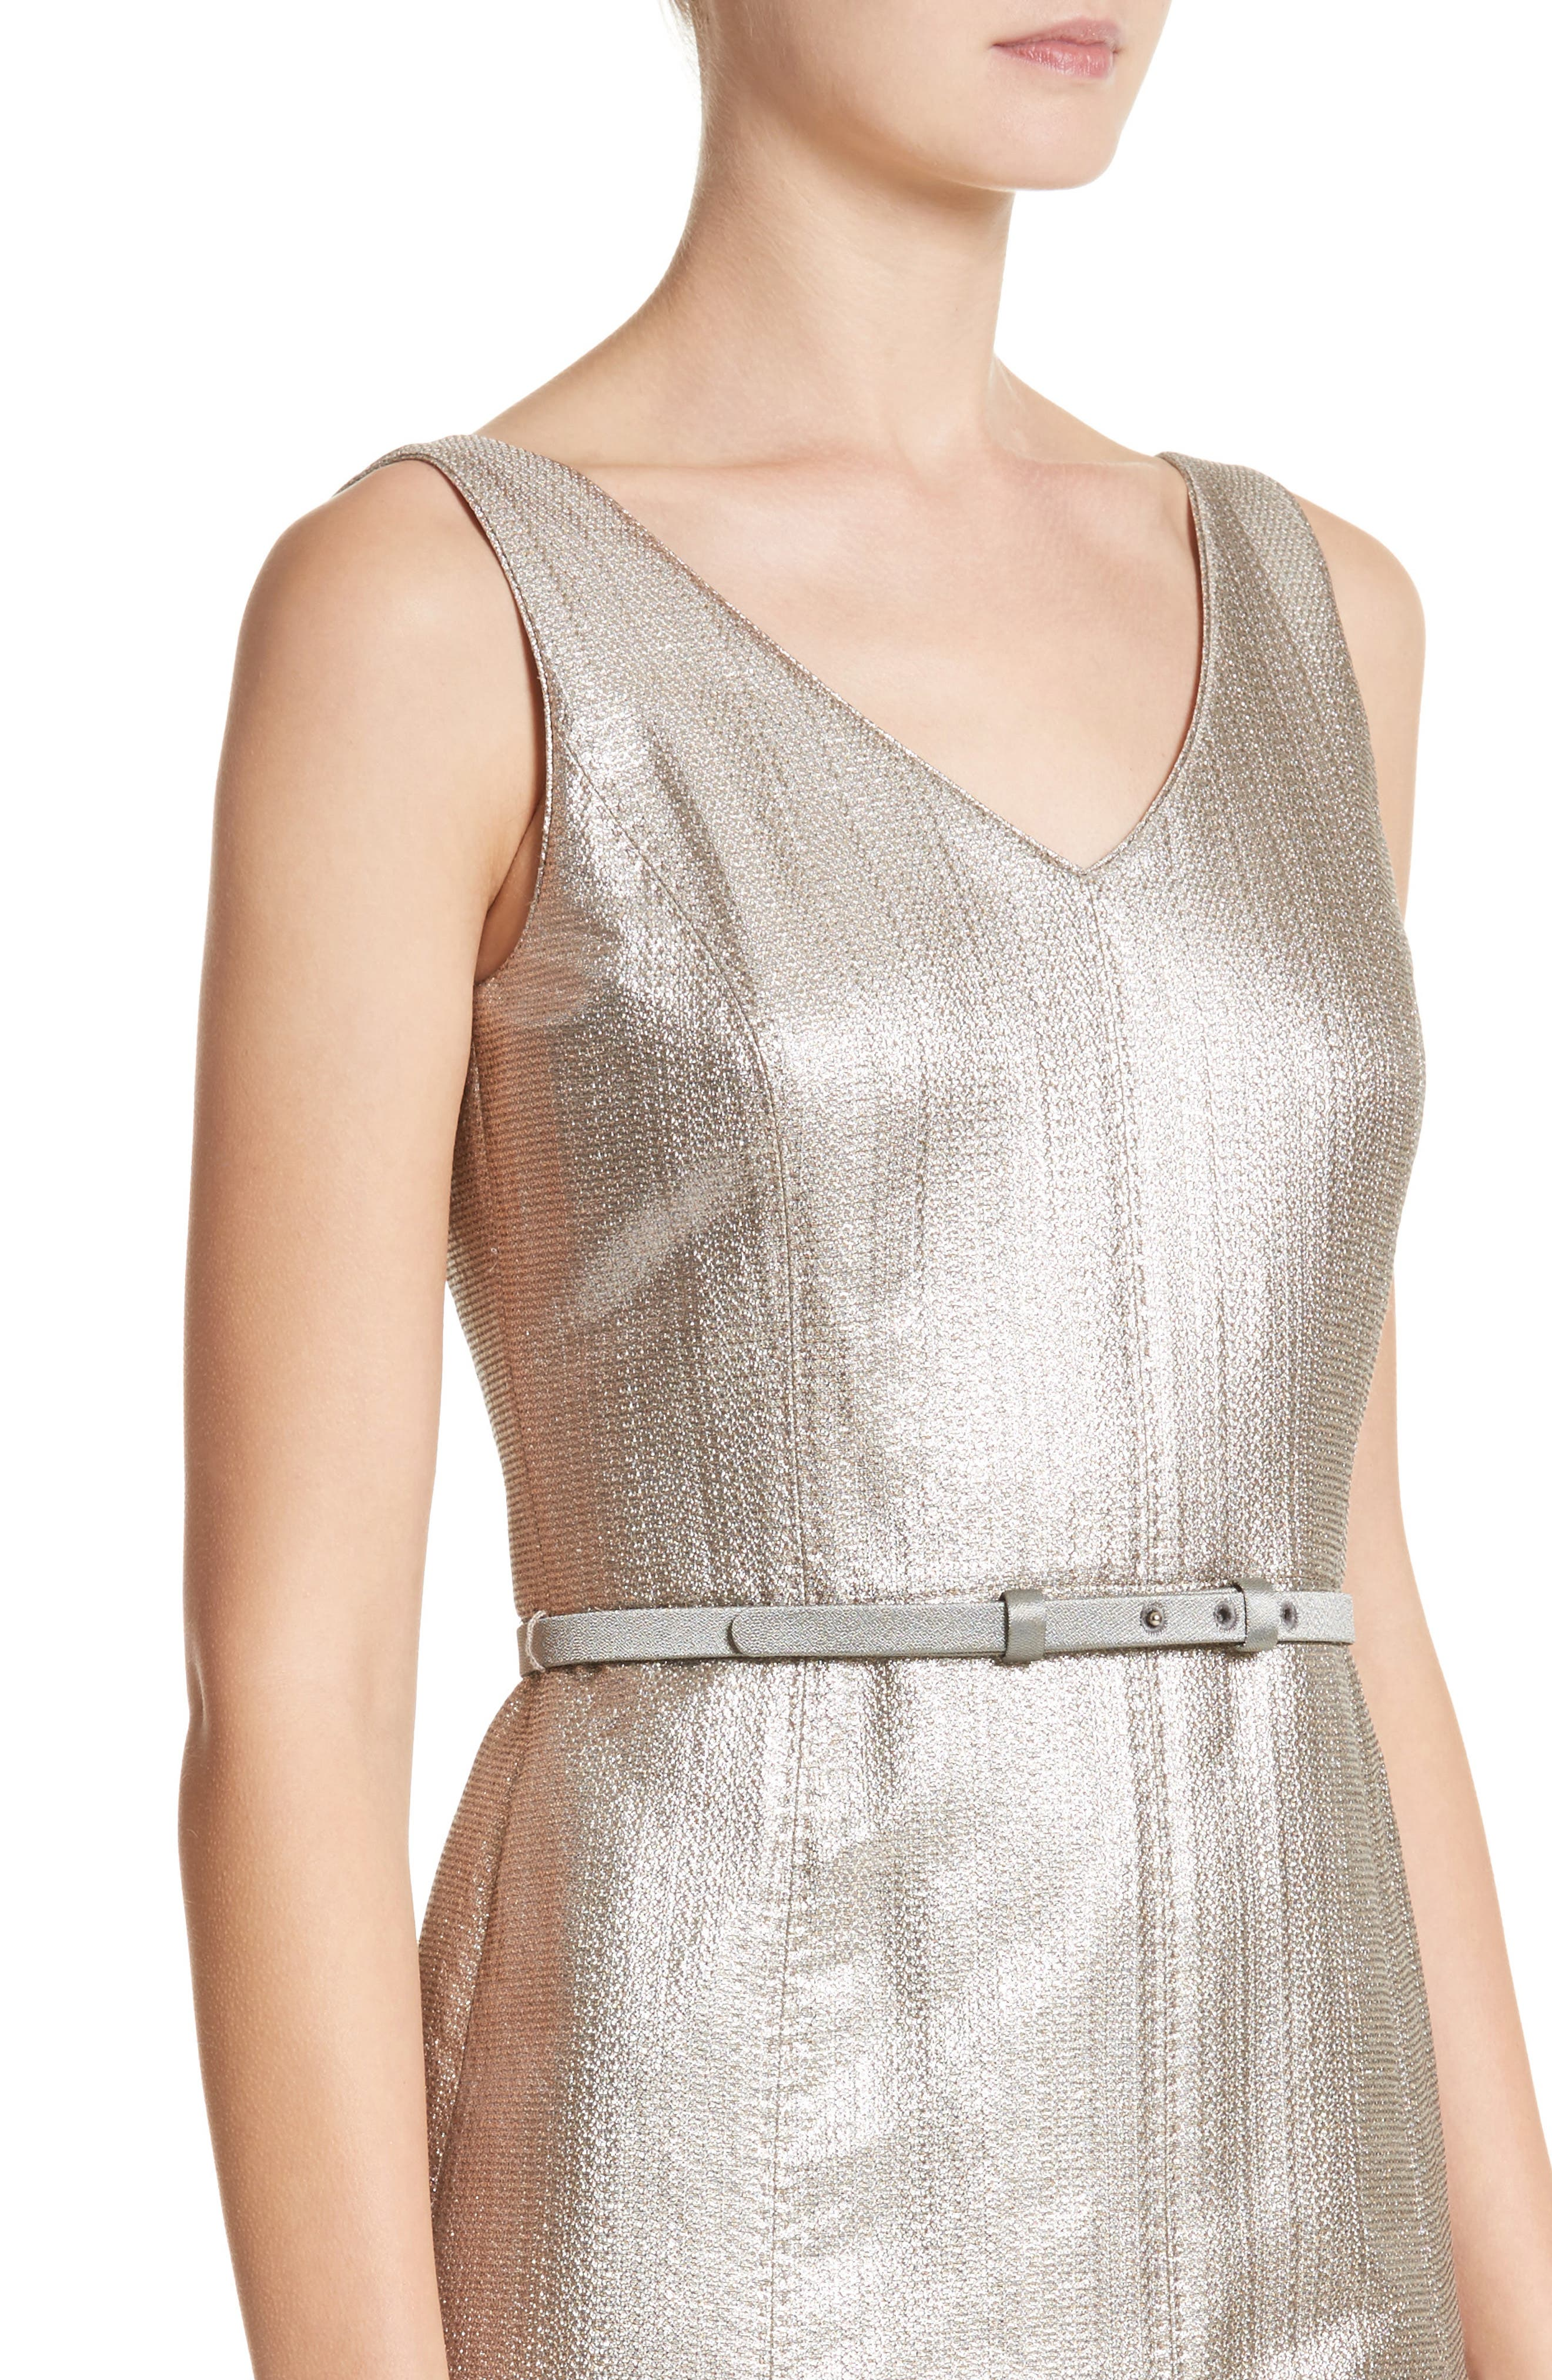 Lois Ceremonial Cloth Dress,                             Alternate thumbnail 4, color,                             Oyster Metallic